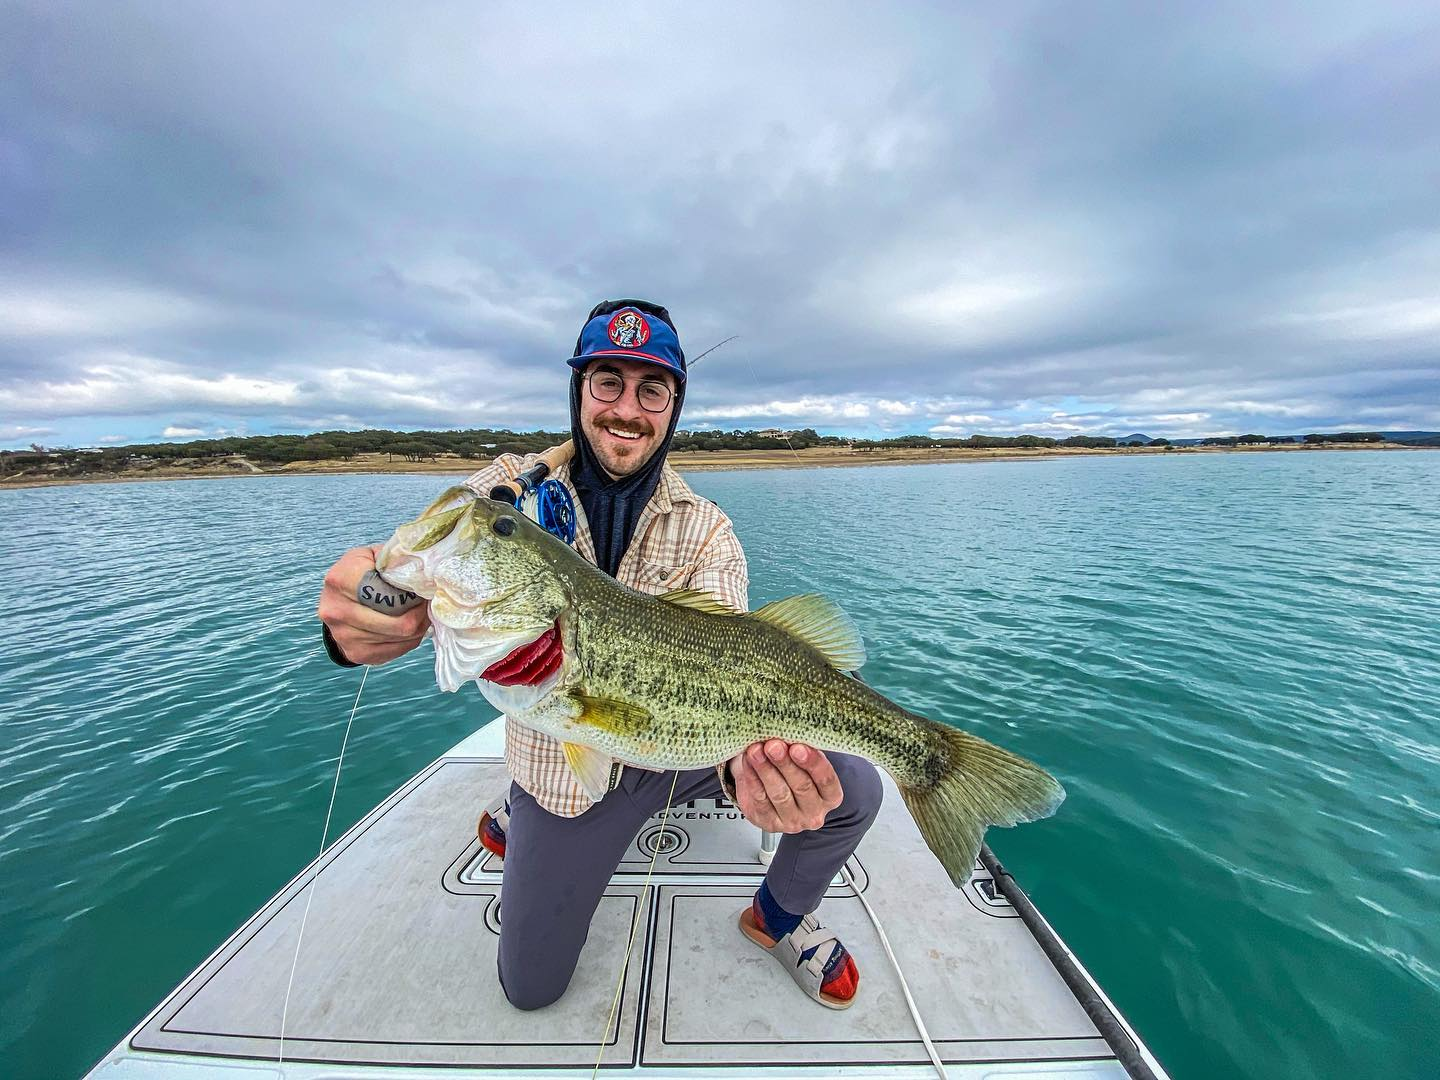 reelfly guide service